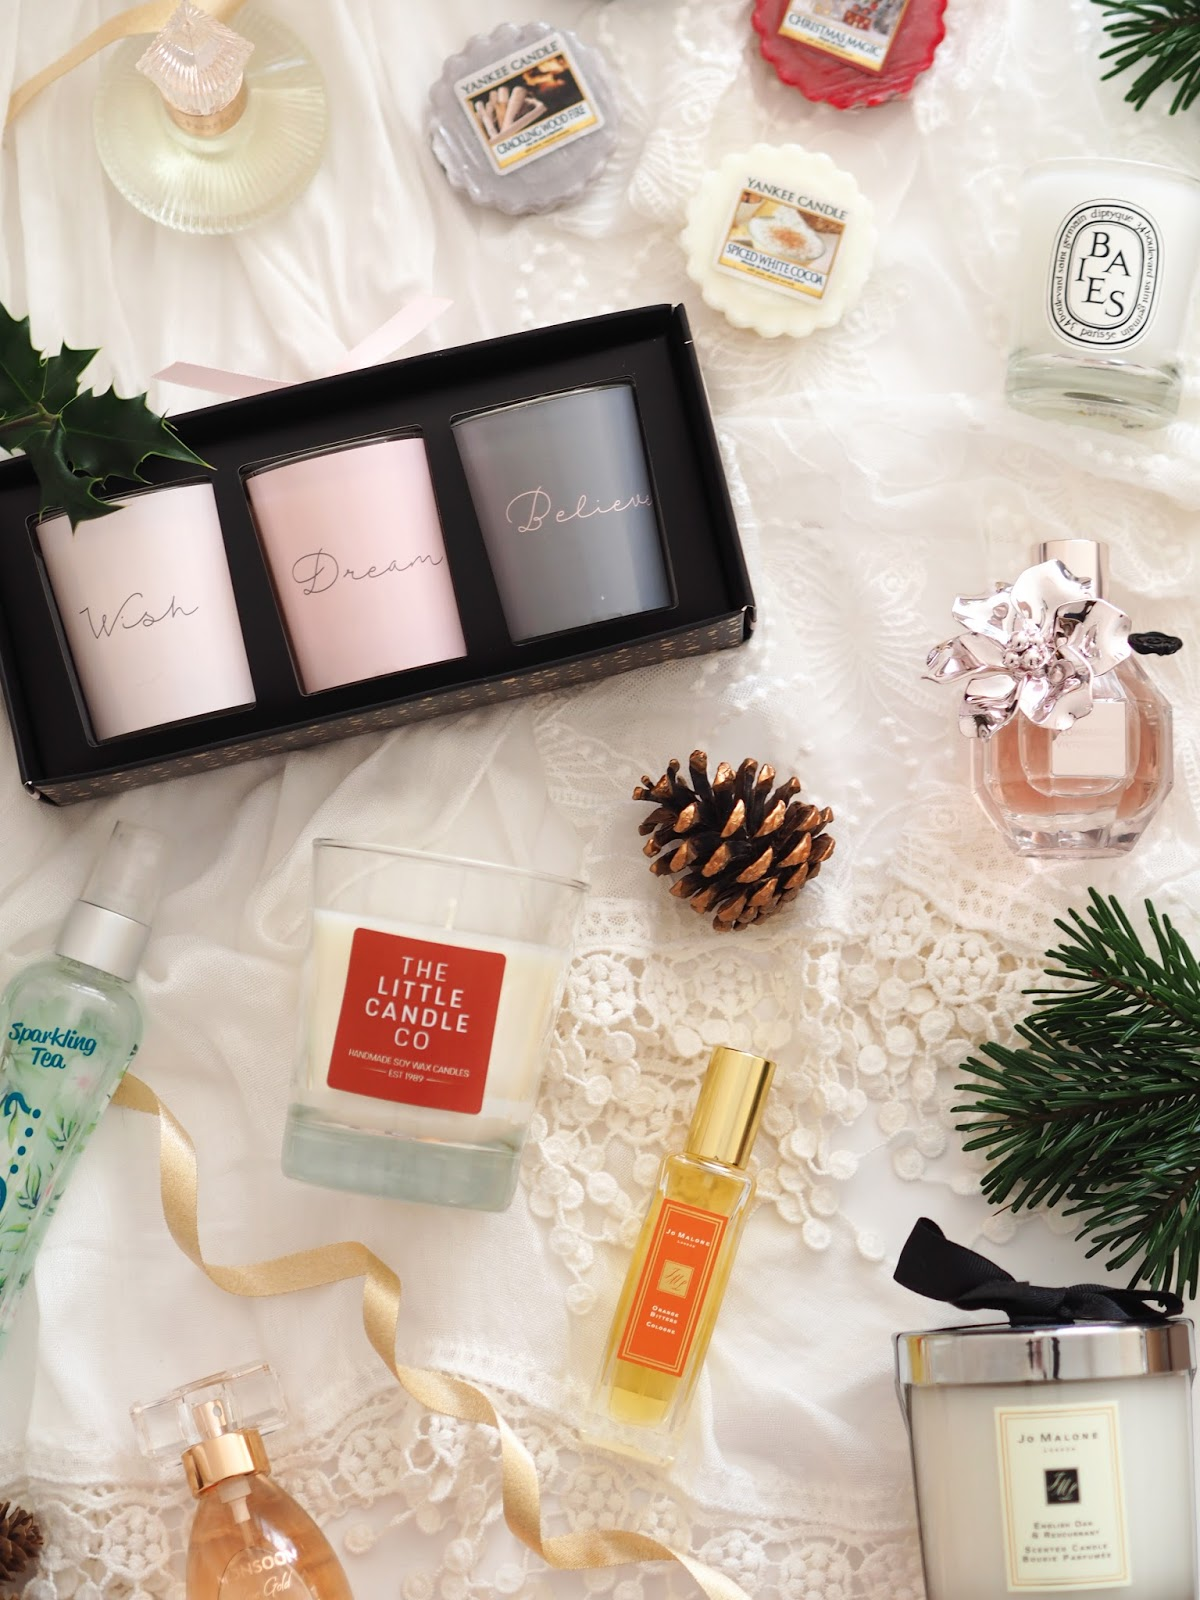 The Scented Gift Guide, Katie Kirk Loves, UK Blogger, Beauty Blogger, Christmas, Christmas Gifts, Gift Guide, Gift Ideas, Beauty Gifts, Lifestyle, Luxury Gifts, Charlotte Tilbury, Viktor & Rolf Flower Bomb, Debenhams Beauty, Lush Cosmetics, Oasis Fashion, Rose Gold, Yankee Candle, The Little Candle Co, So...? Perfume, Diptique, Jo Malone, Christmas Fragrances, Fragranced Gifts, Christmas Scents, Christmas Magic, The Perfect Tree, Crackling Wood Fire, Spiced White Cocoa, Christmas Giveaway, Candle Giveaway, Monsoon Rose Gold Perfume